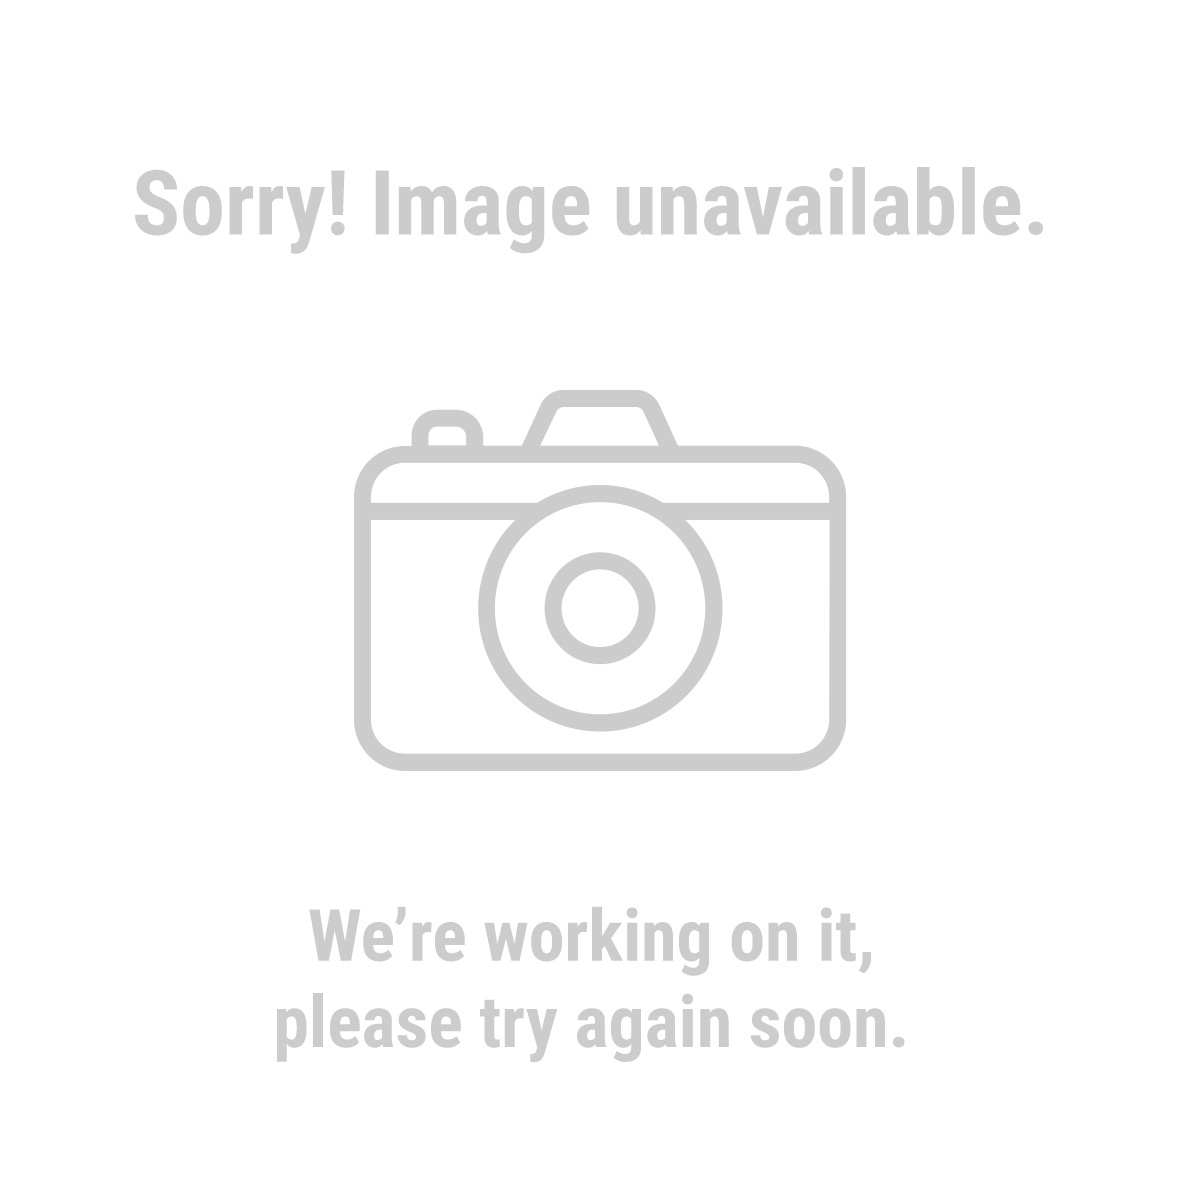 "Haul Master Automotive 97711 3/8"" x 14 Ft. Trucker's Chain"